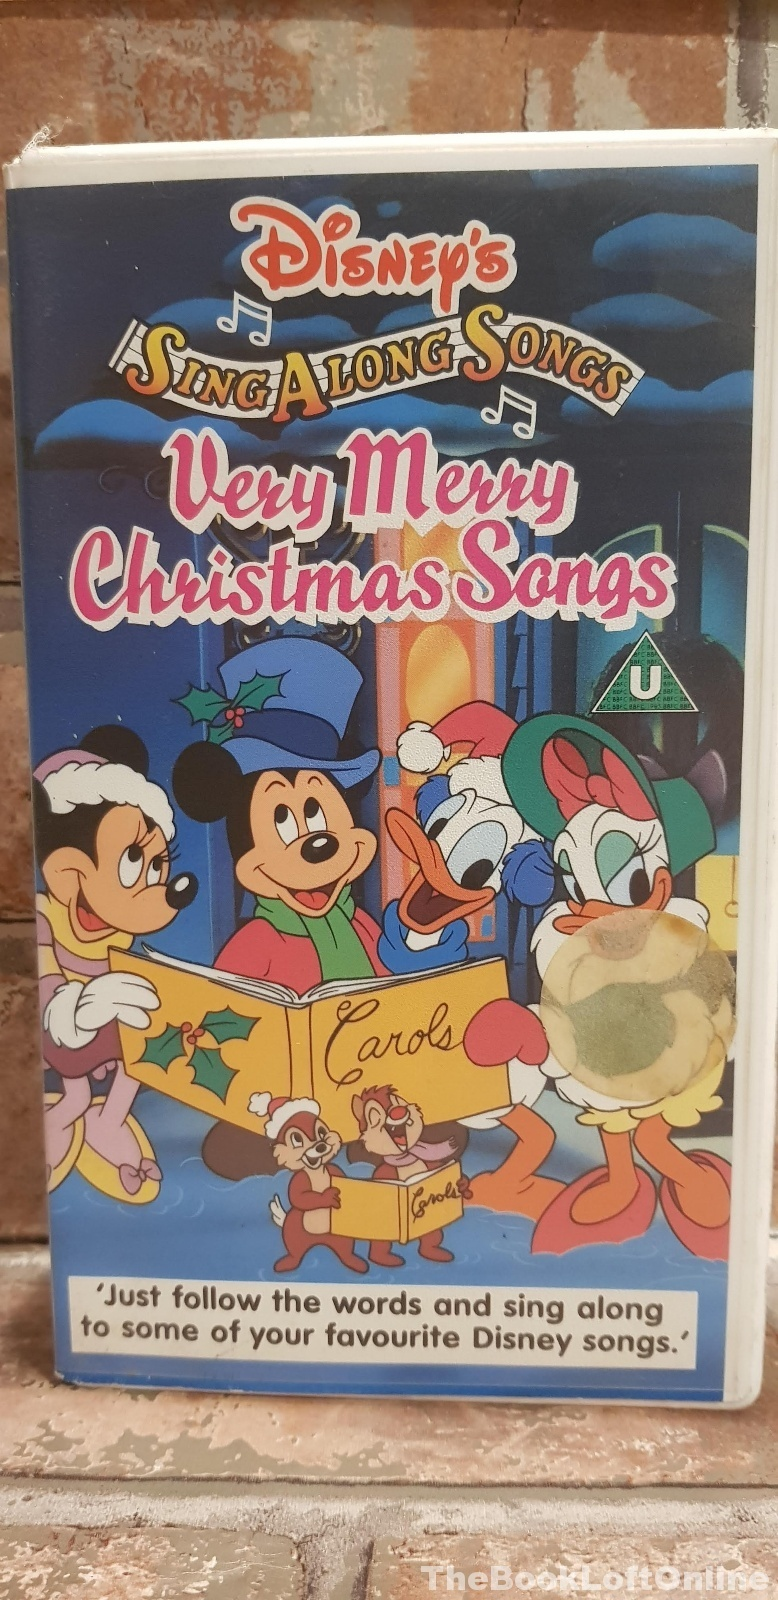 Disney's Sing Along Songs Very Merry Christmas Songs VHS Video Tape ...